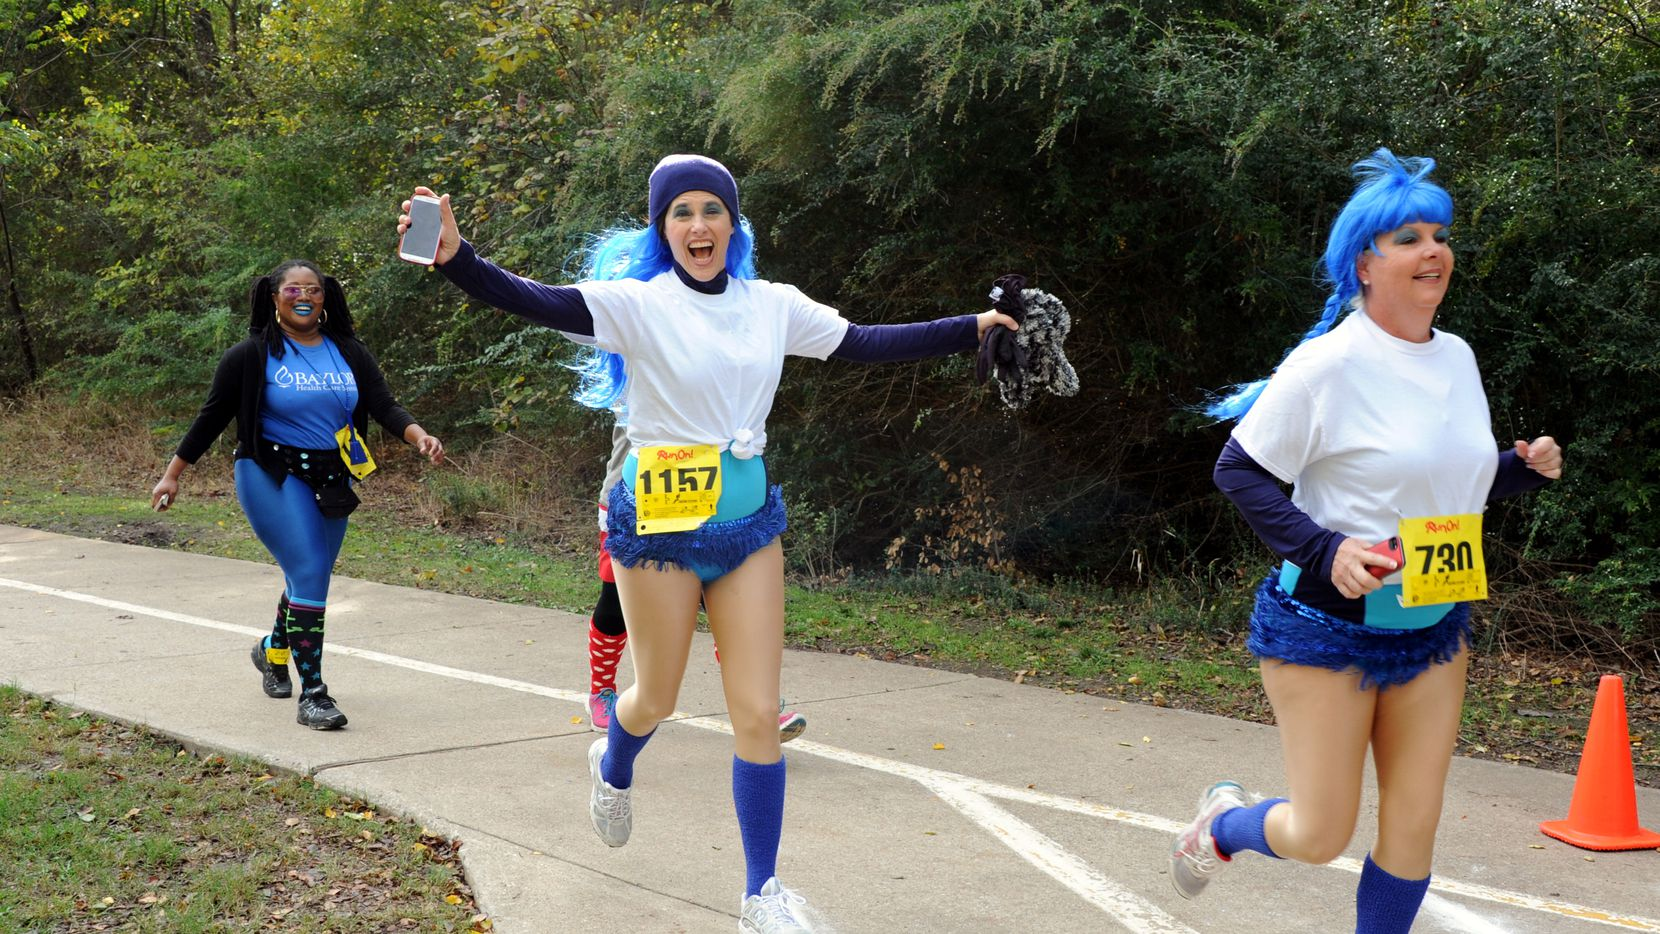 Strip down to your undies for the Undy Run on Saturday morning in Arlington.